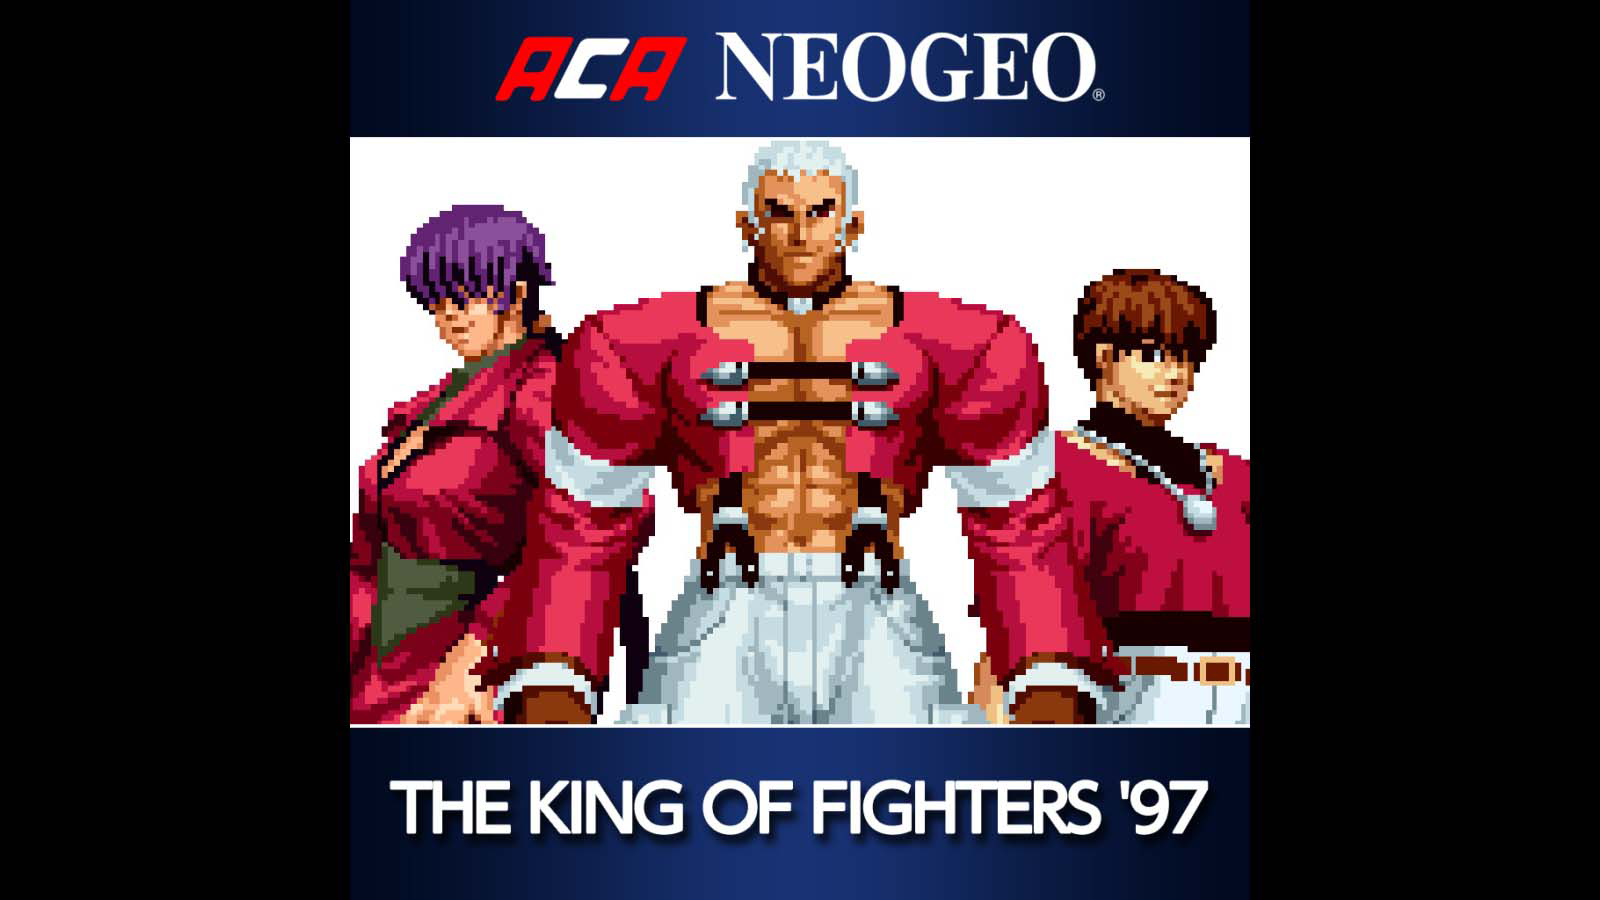 Aca Neogeo The King Of Fighters 97 Game Ps4 Playstation